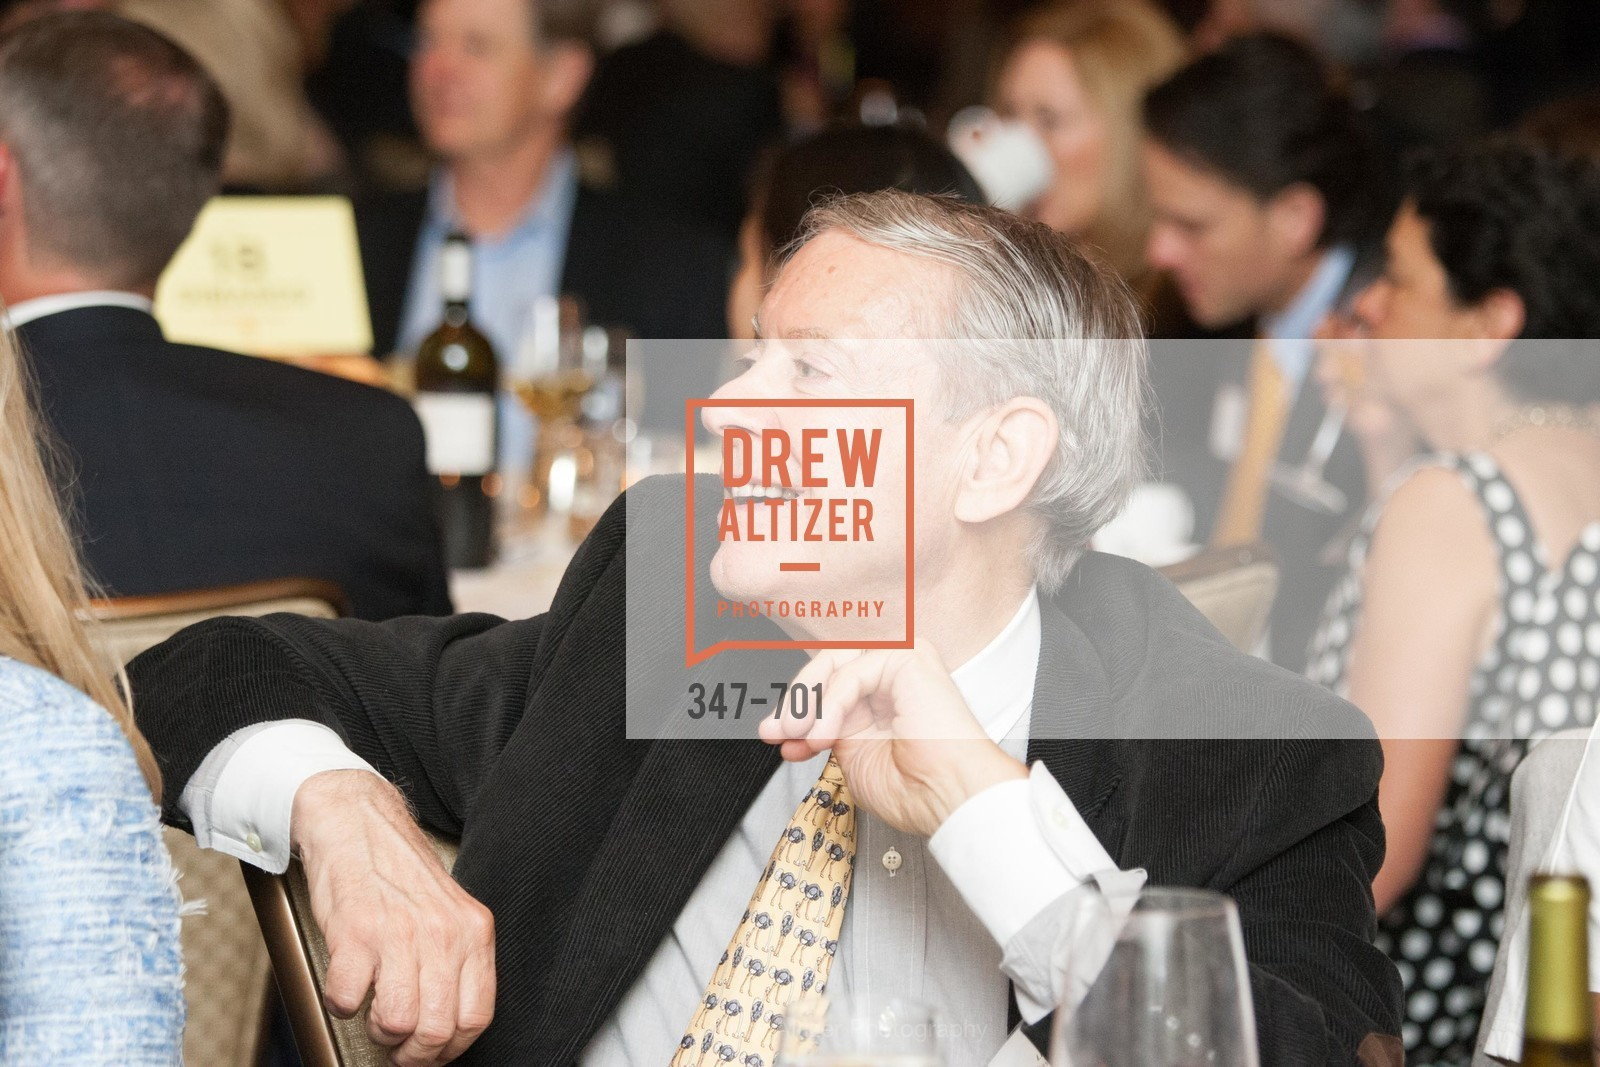 Extras, SUMMER SEARCH San Francisco 25th Anniversary, May 7th, 2015, Photo,Drew Altizer, Drew Altizer Photography, full-service agency, private events, San Francisco photographer, photographer california